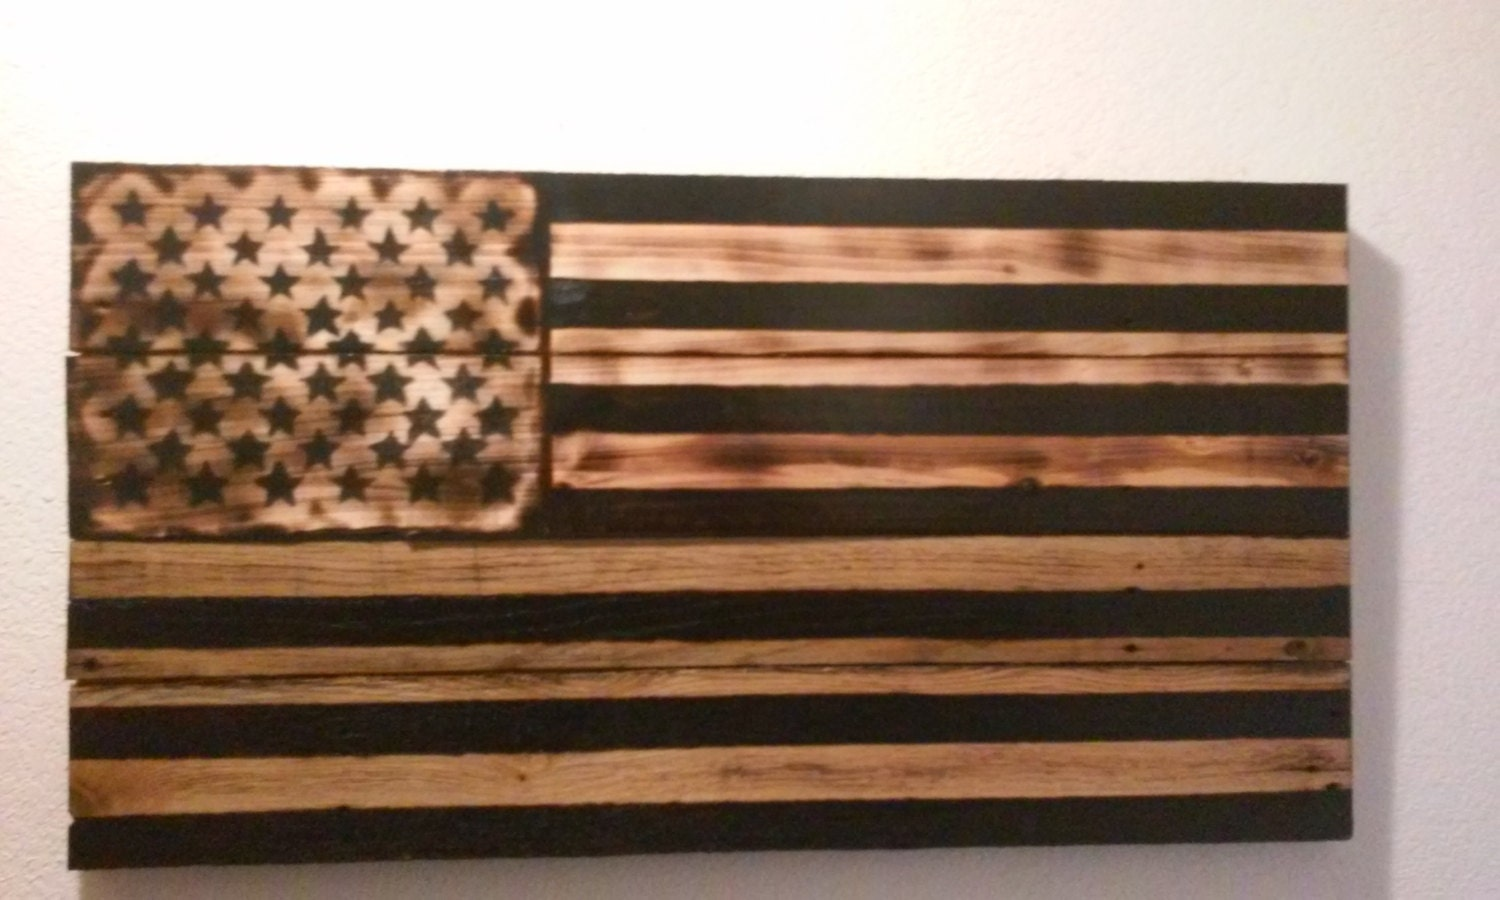 Wood Burned Rustic American Flag By Woodworksbywes On Etsy